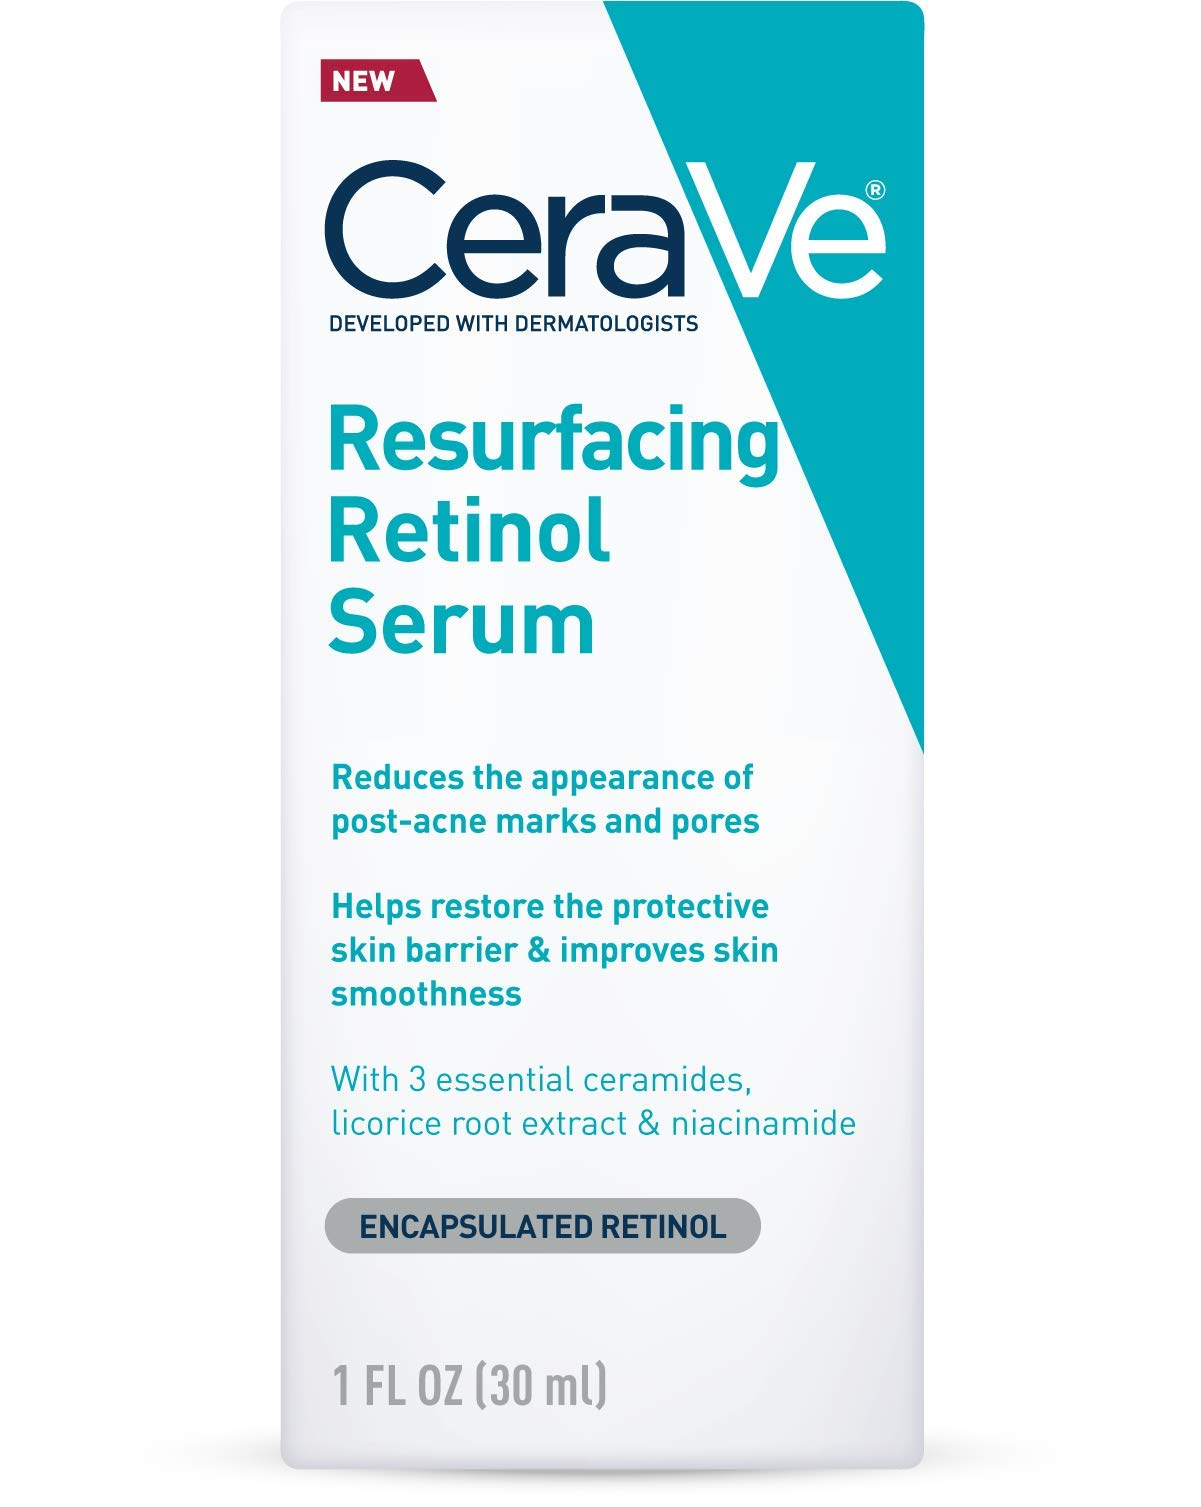 CeraVe Retinol Serum for Post-Acne Marks and Skin Texture | Pore Refining, Resurfacing, Brightening Facial Serum with Retinol | 1 Oz